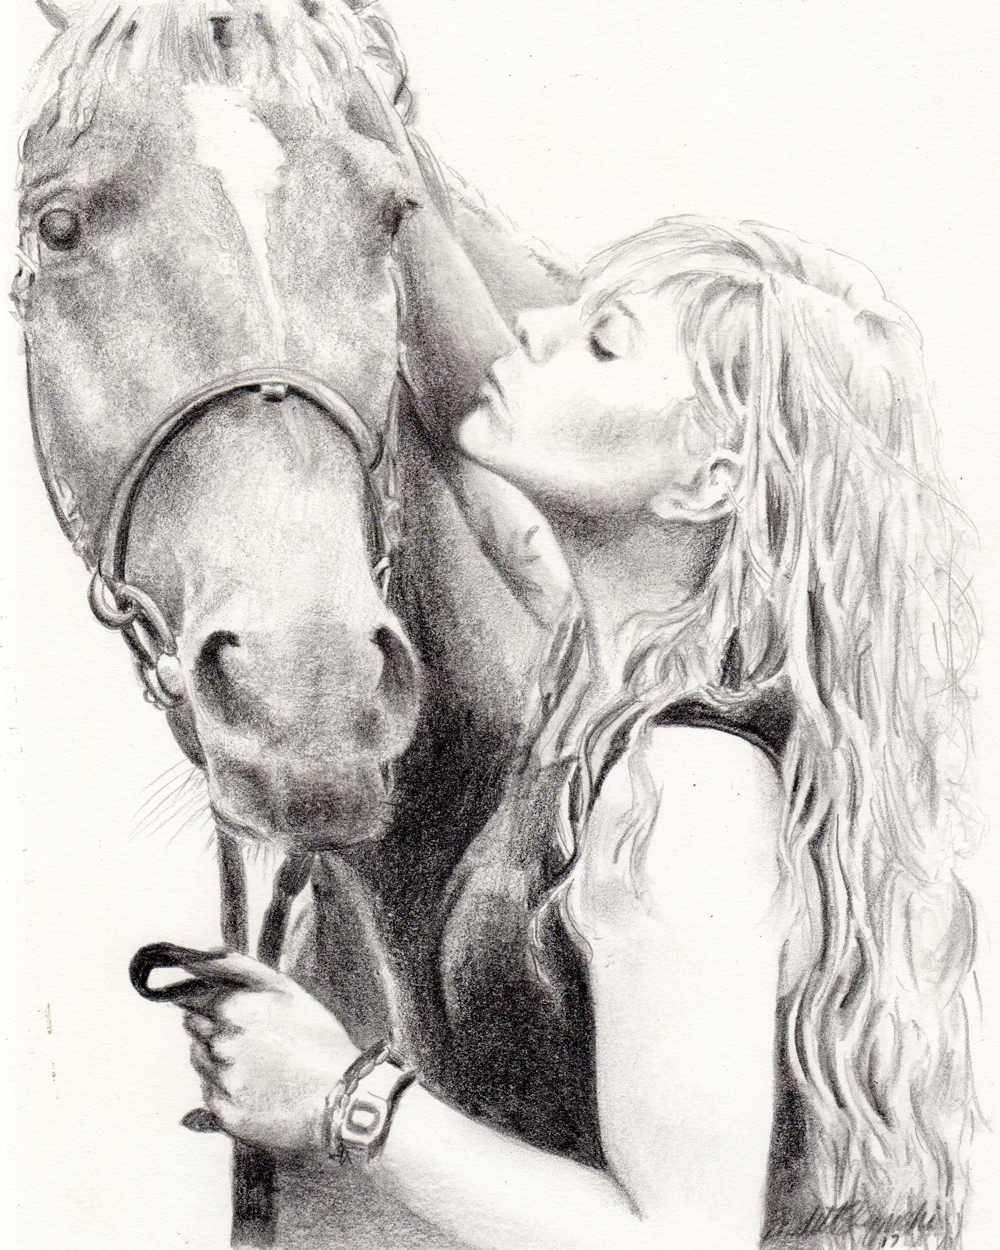 Hania and Gracje, pencil, 8 x 10 © Bernadette E. Kazmarski